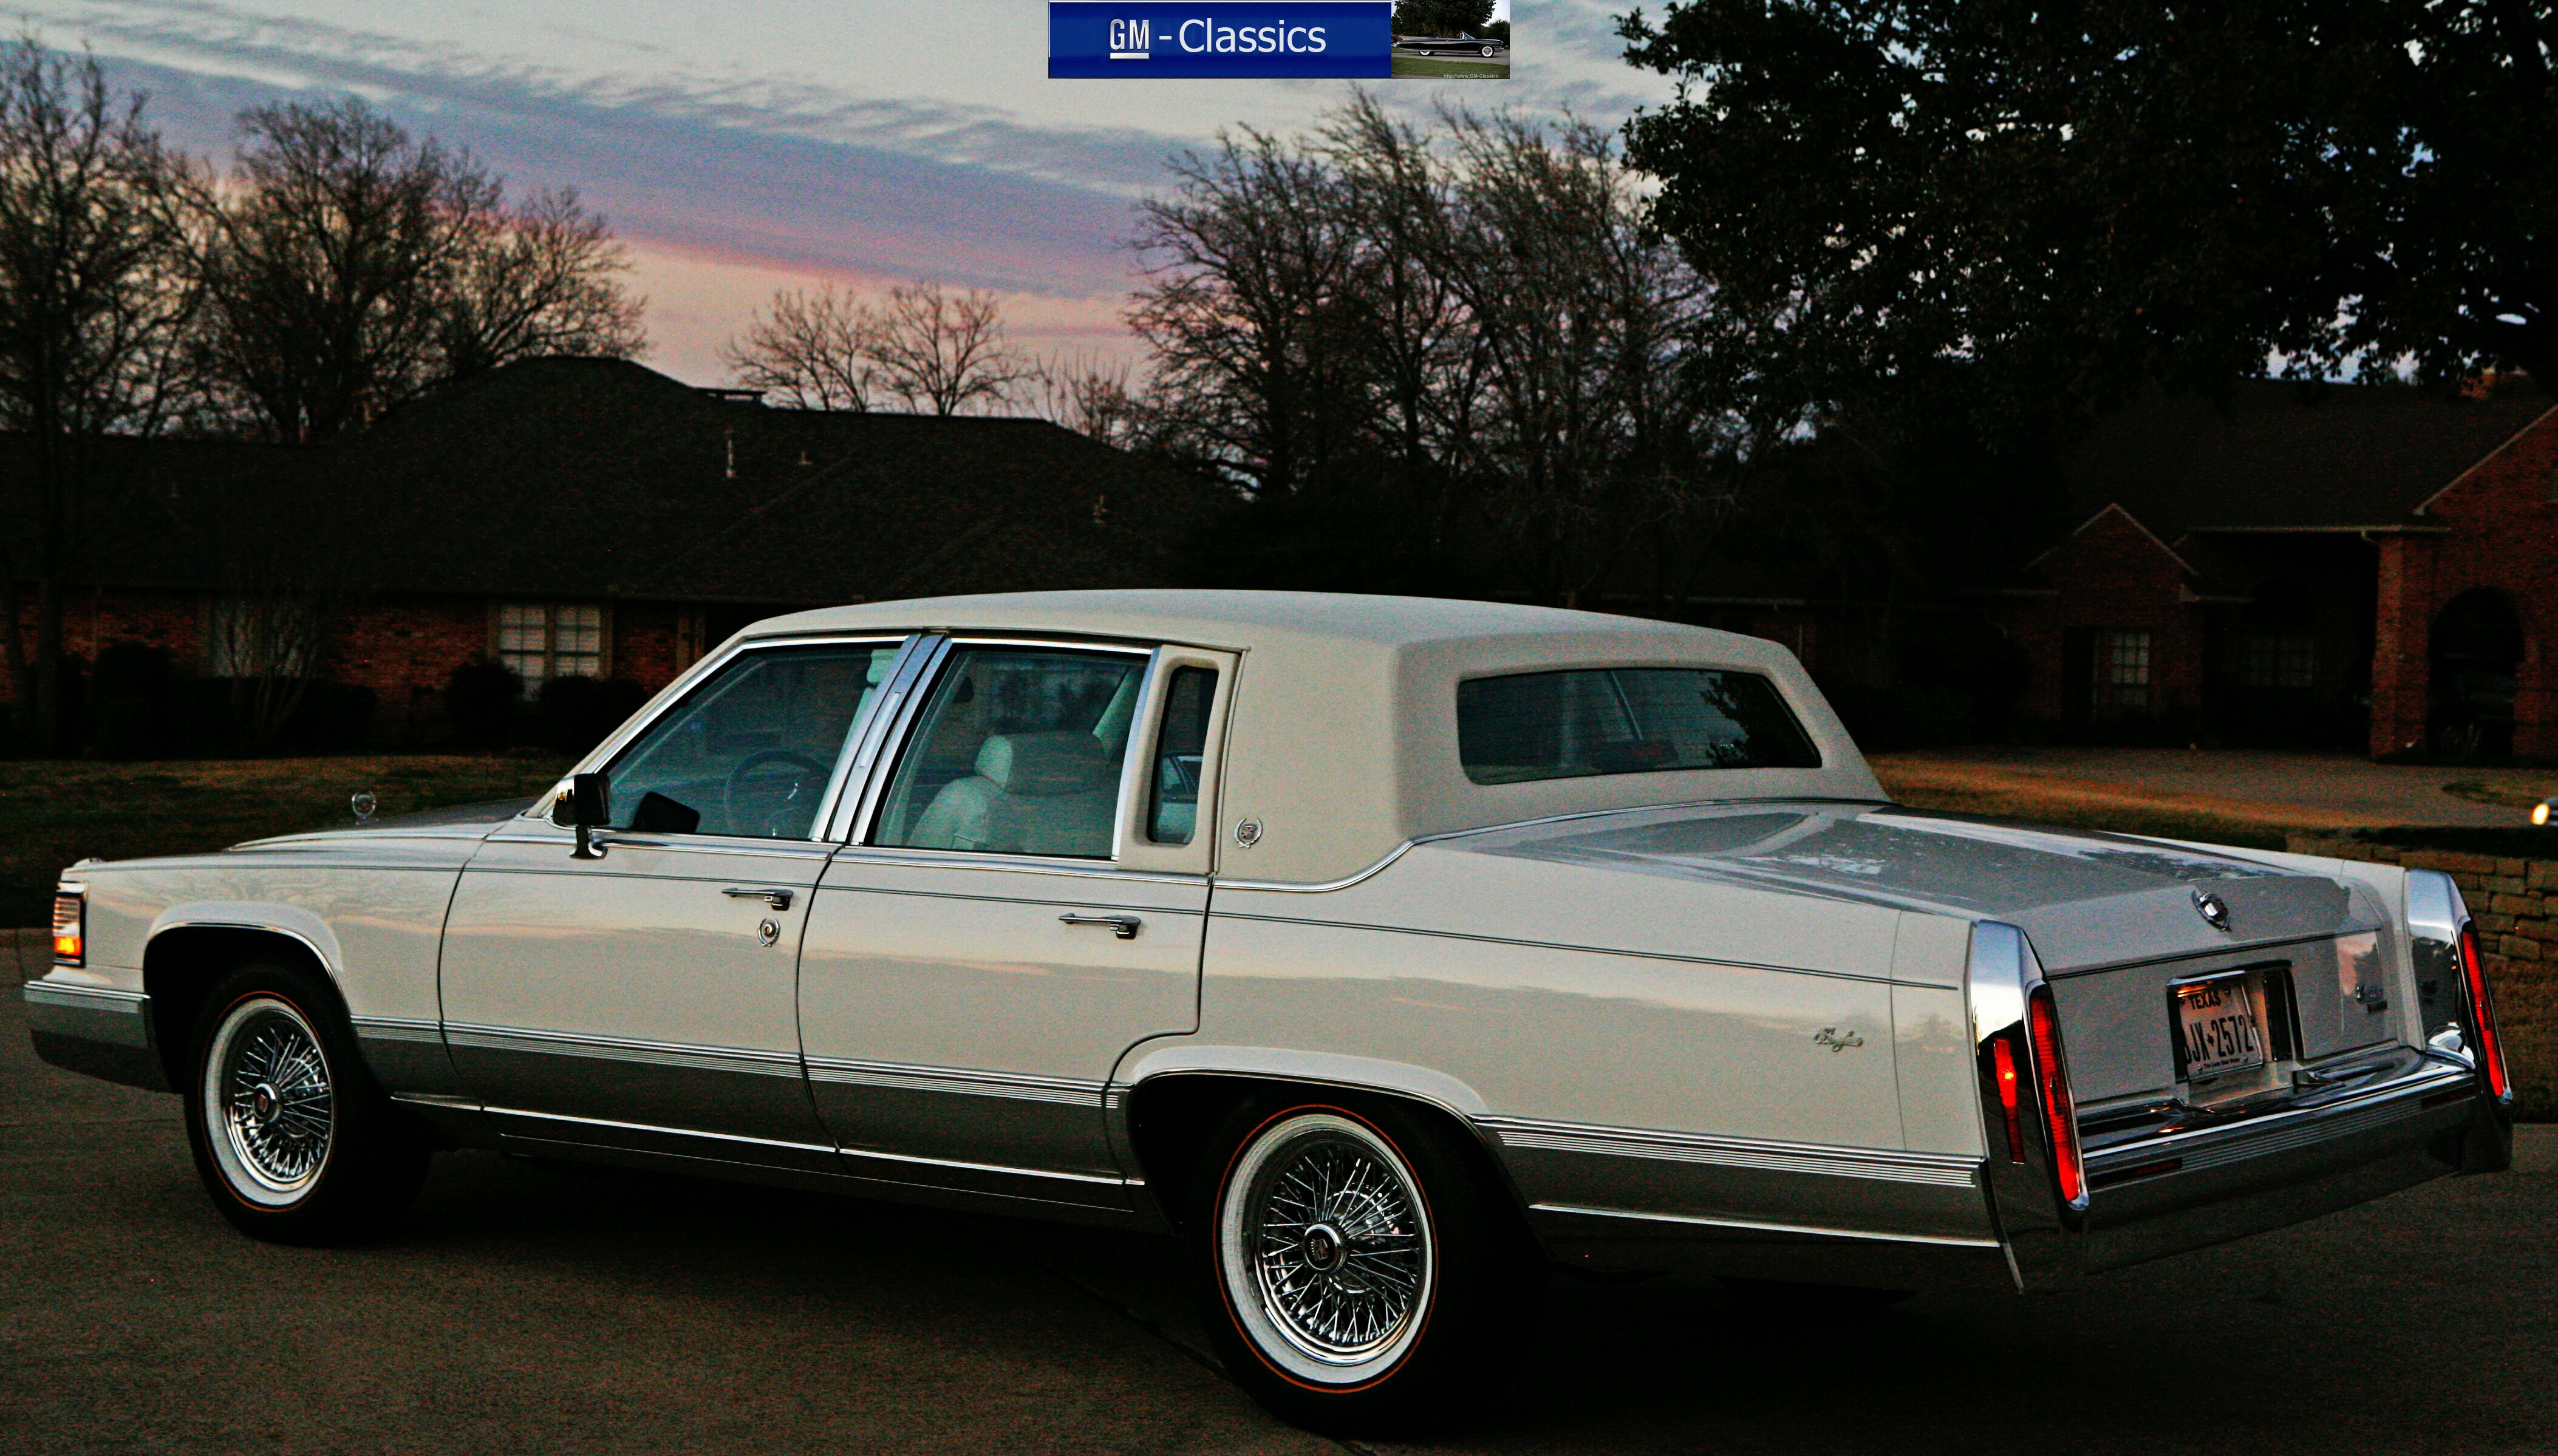 img sale a garrett played in presleys with chance encounter this limousine first for fleetwood s jerry career elvis photo starring role cadillac presley